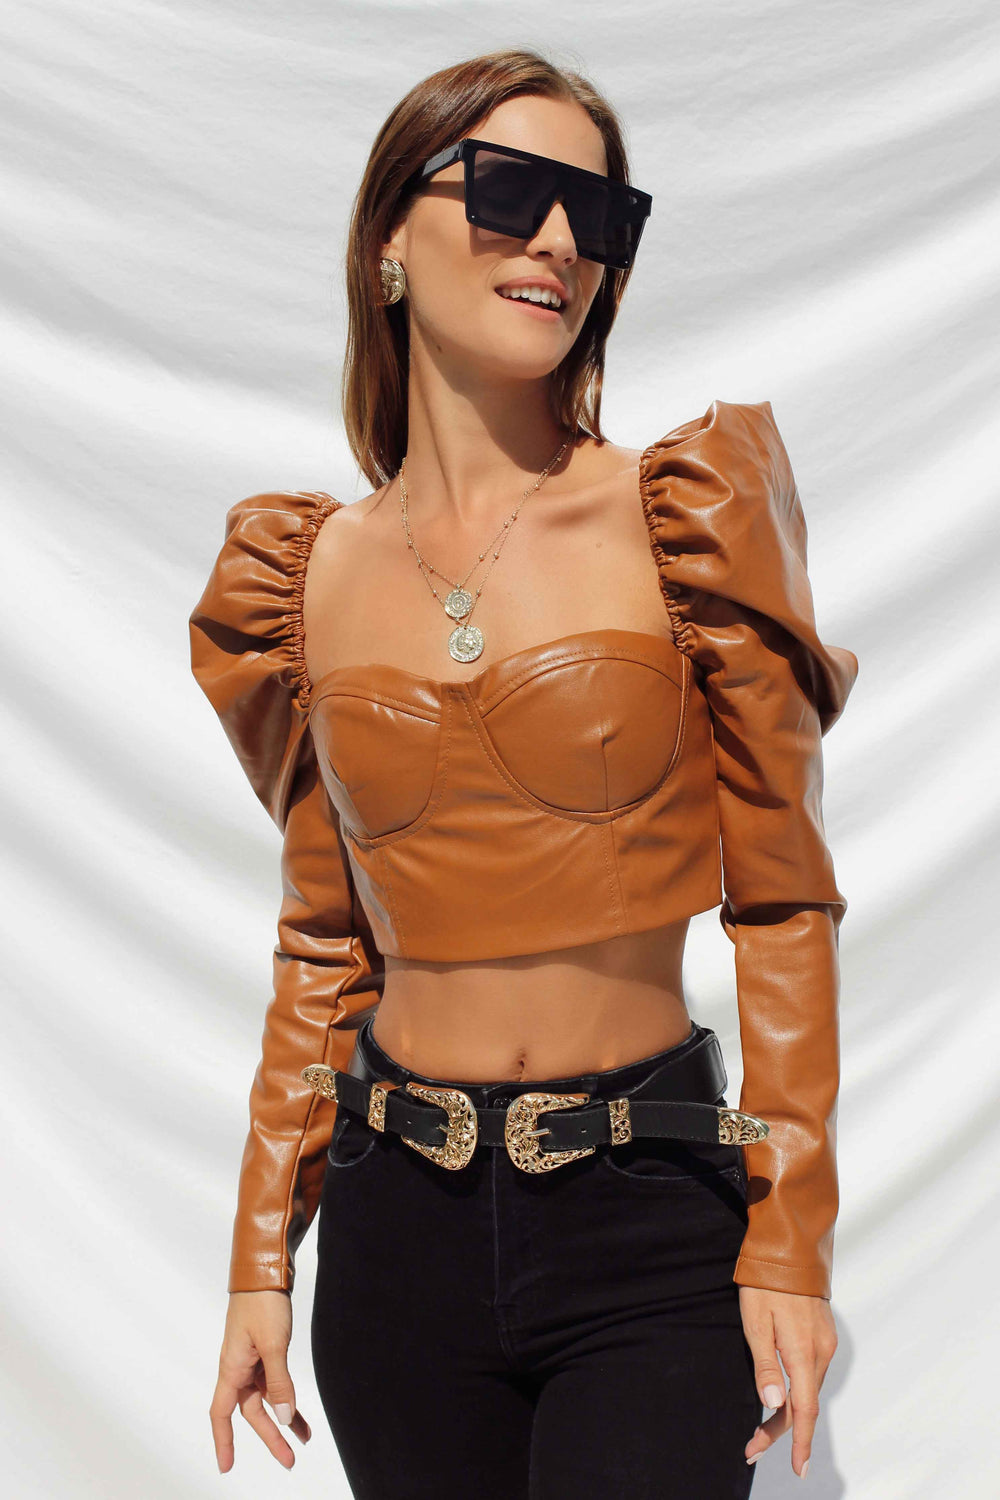 GISELLE TOP IN TAN | Women's Online Shopping | CHICLEFRIQUE  (4351410208857)